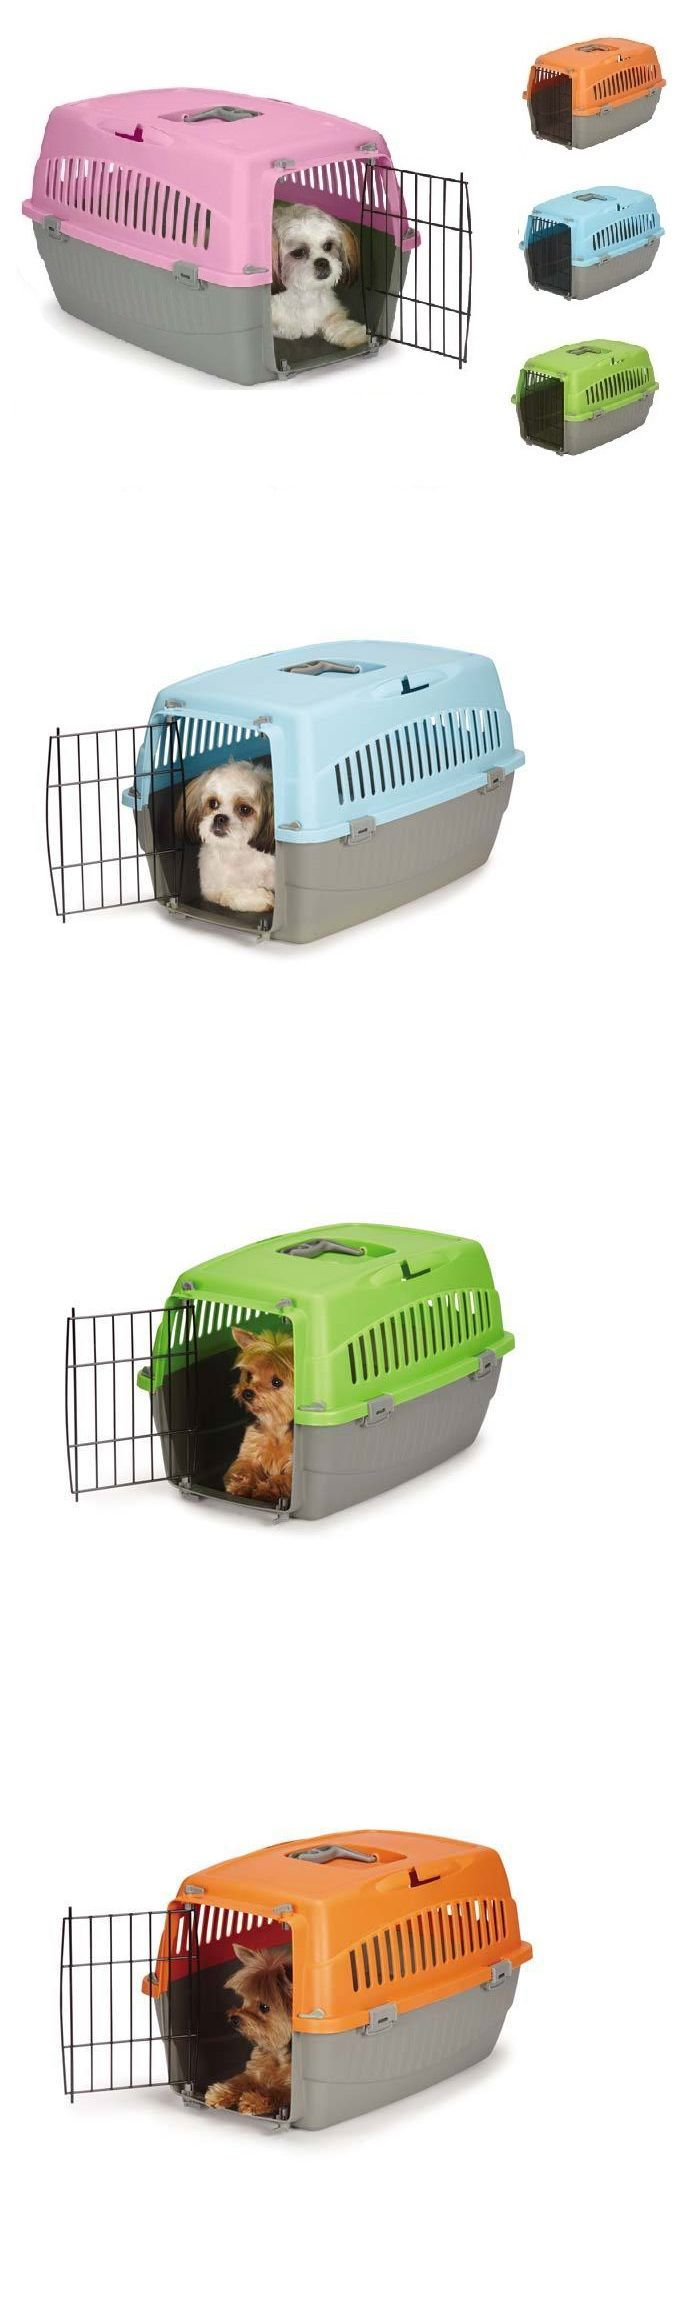 Carriers and Totes 177788: Small Dog Cat Pet Travel Crate Lightweight Pet Carrier Plastic And Wire Kennel Cab -> BUY IT NOW ONLY: $45.89 on eBay!